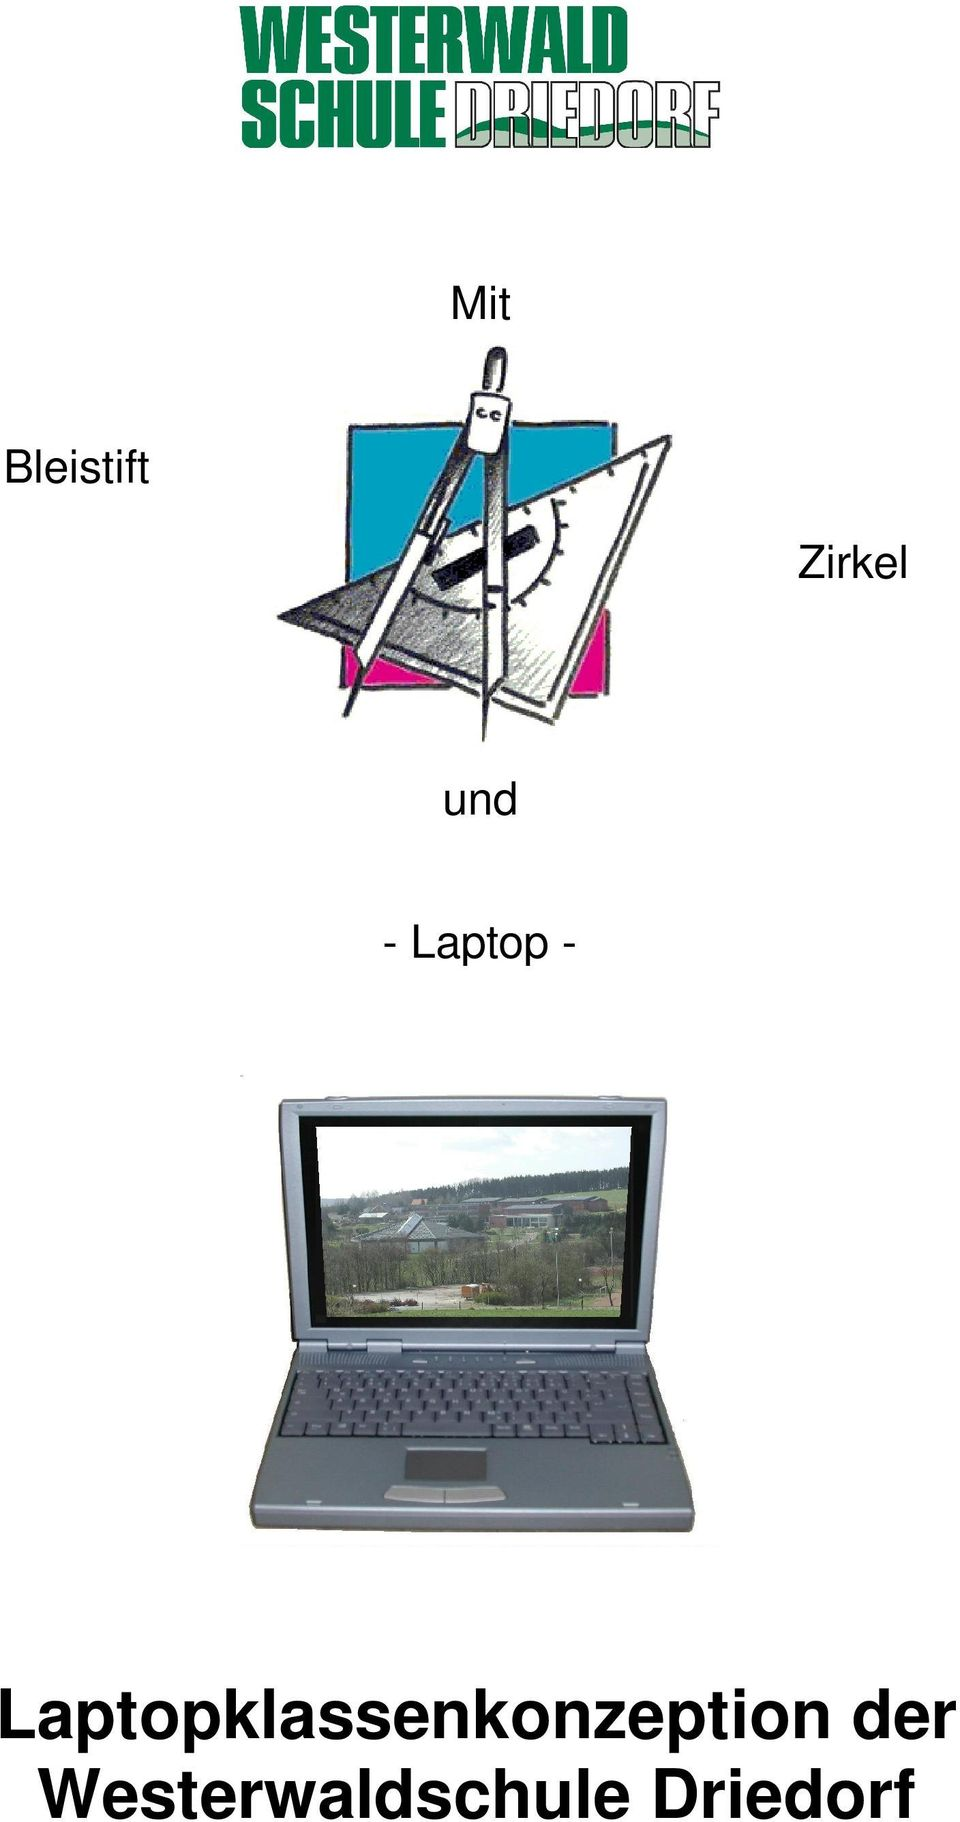 Laptopklassenkonzeption der